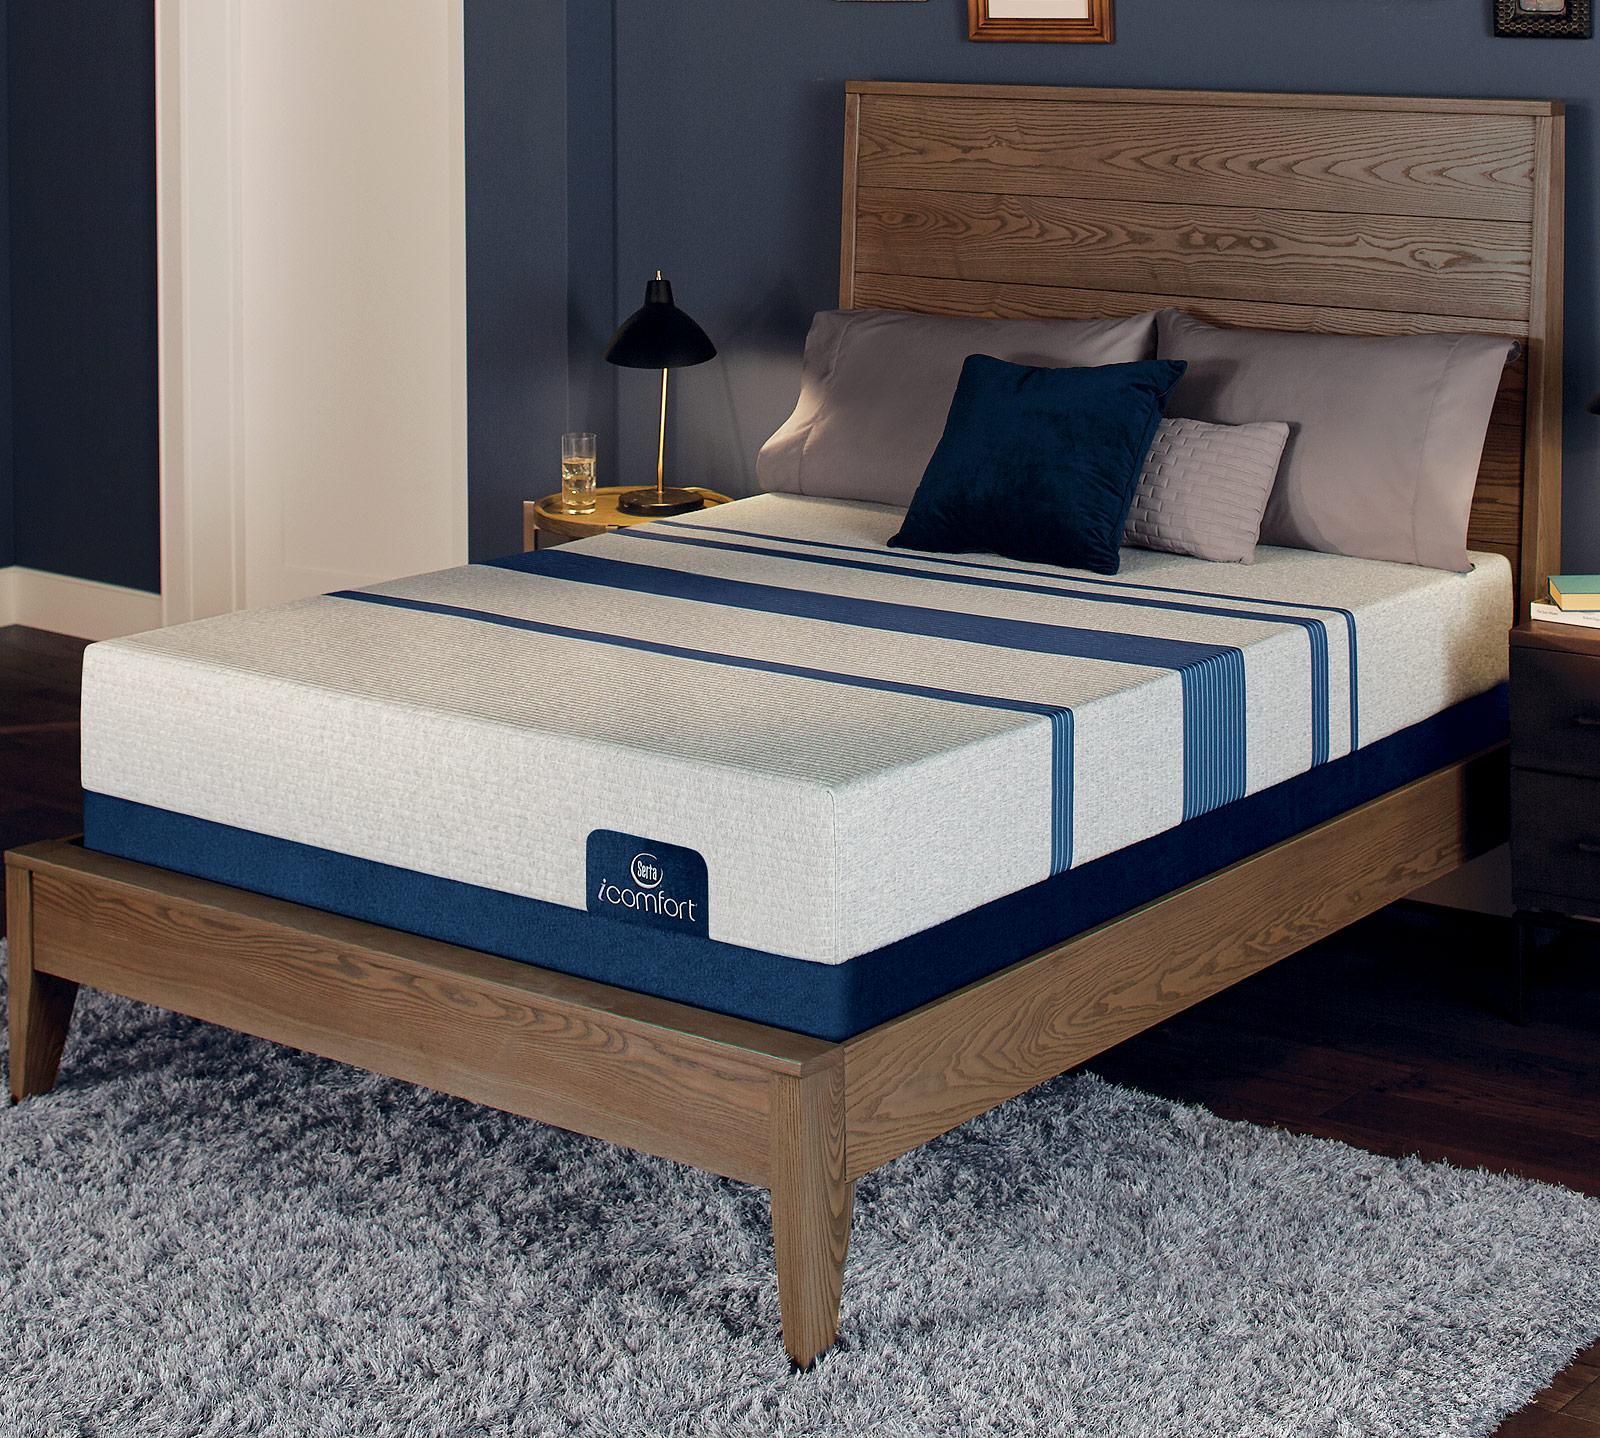 Icomfort Blue Touch 100 9 75 Quot Gentle Firm Memory Foam Mattress